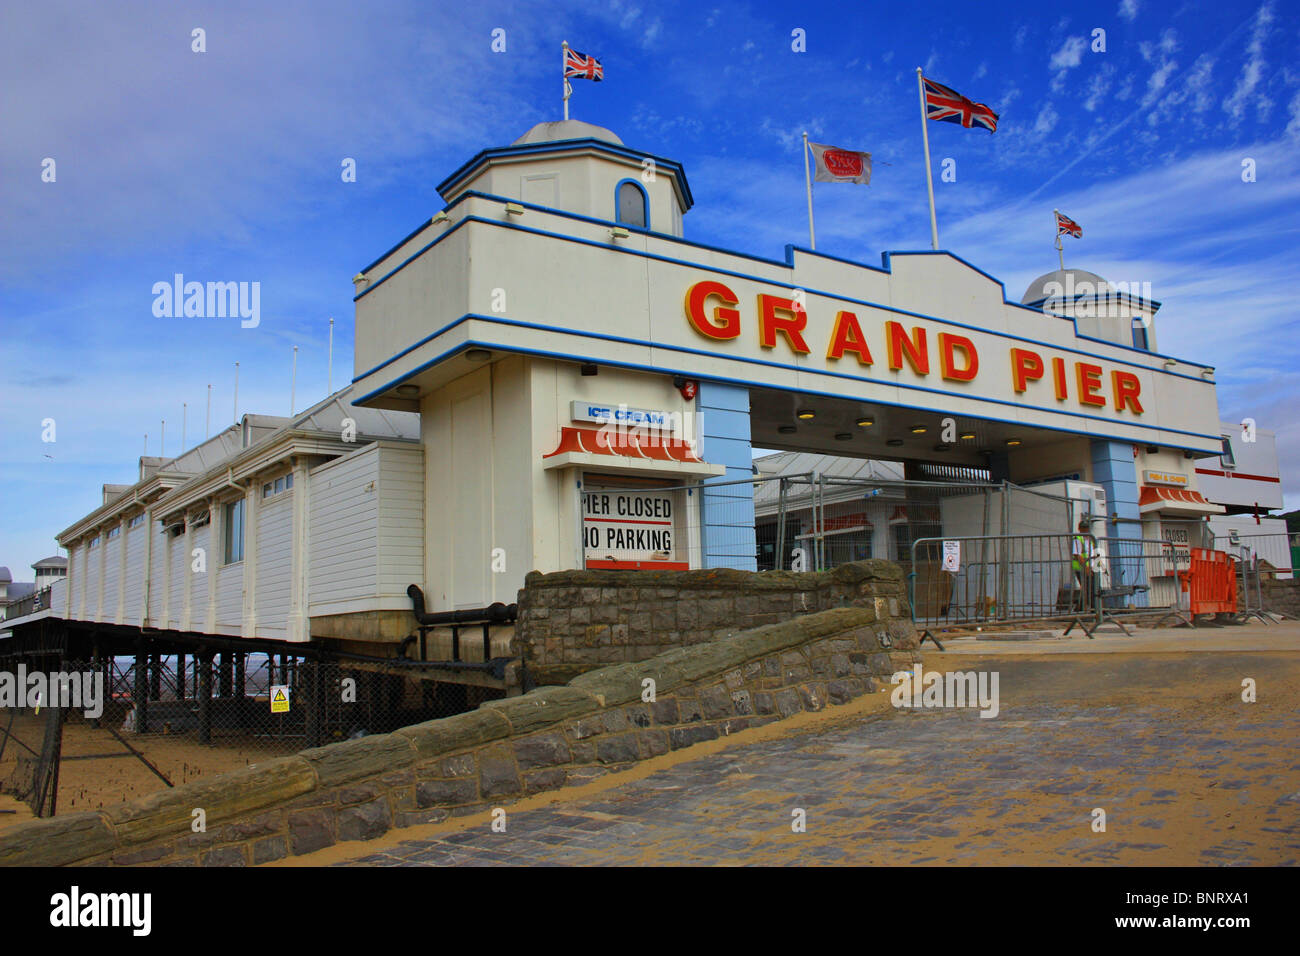 Grand Pier at weston super mare is under reconstruction. - Stock Image